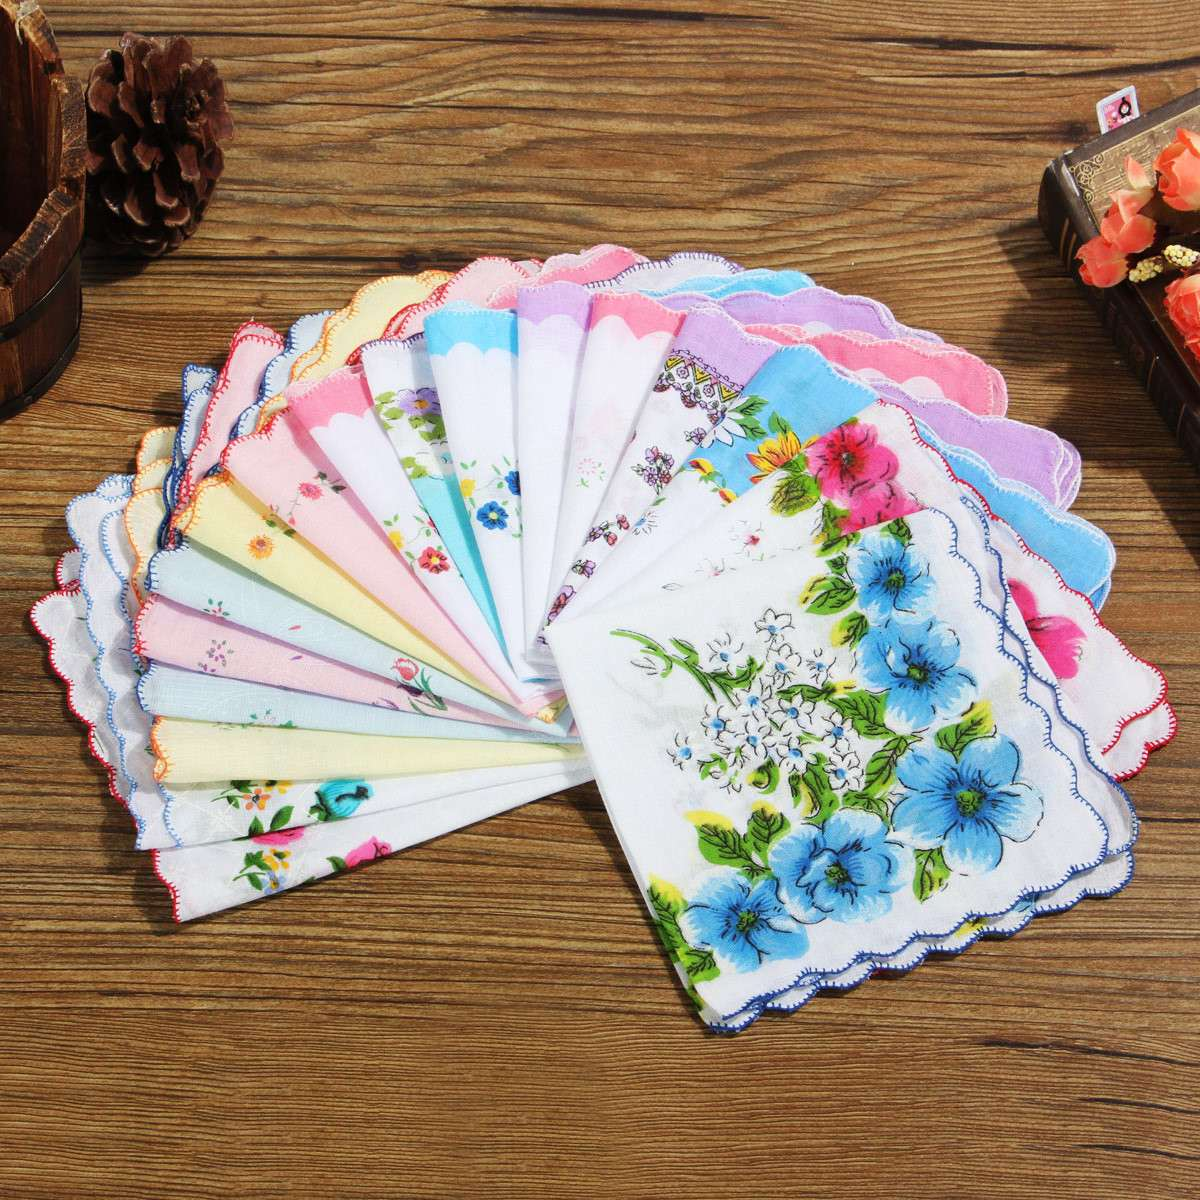 New 50x Flower Handkerchiefs Various Cotton Vintage Hankies Floral Lady Women Style Gift 28x28cm